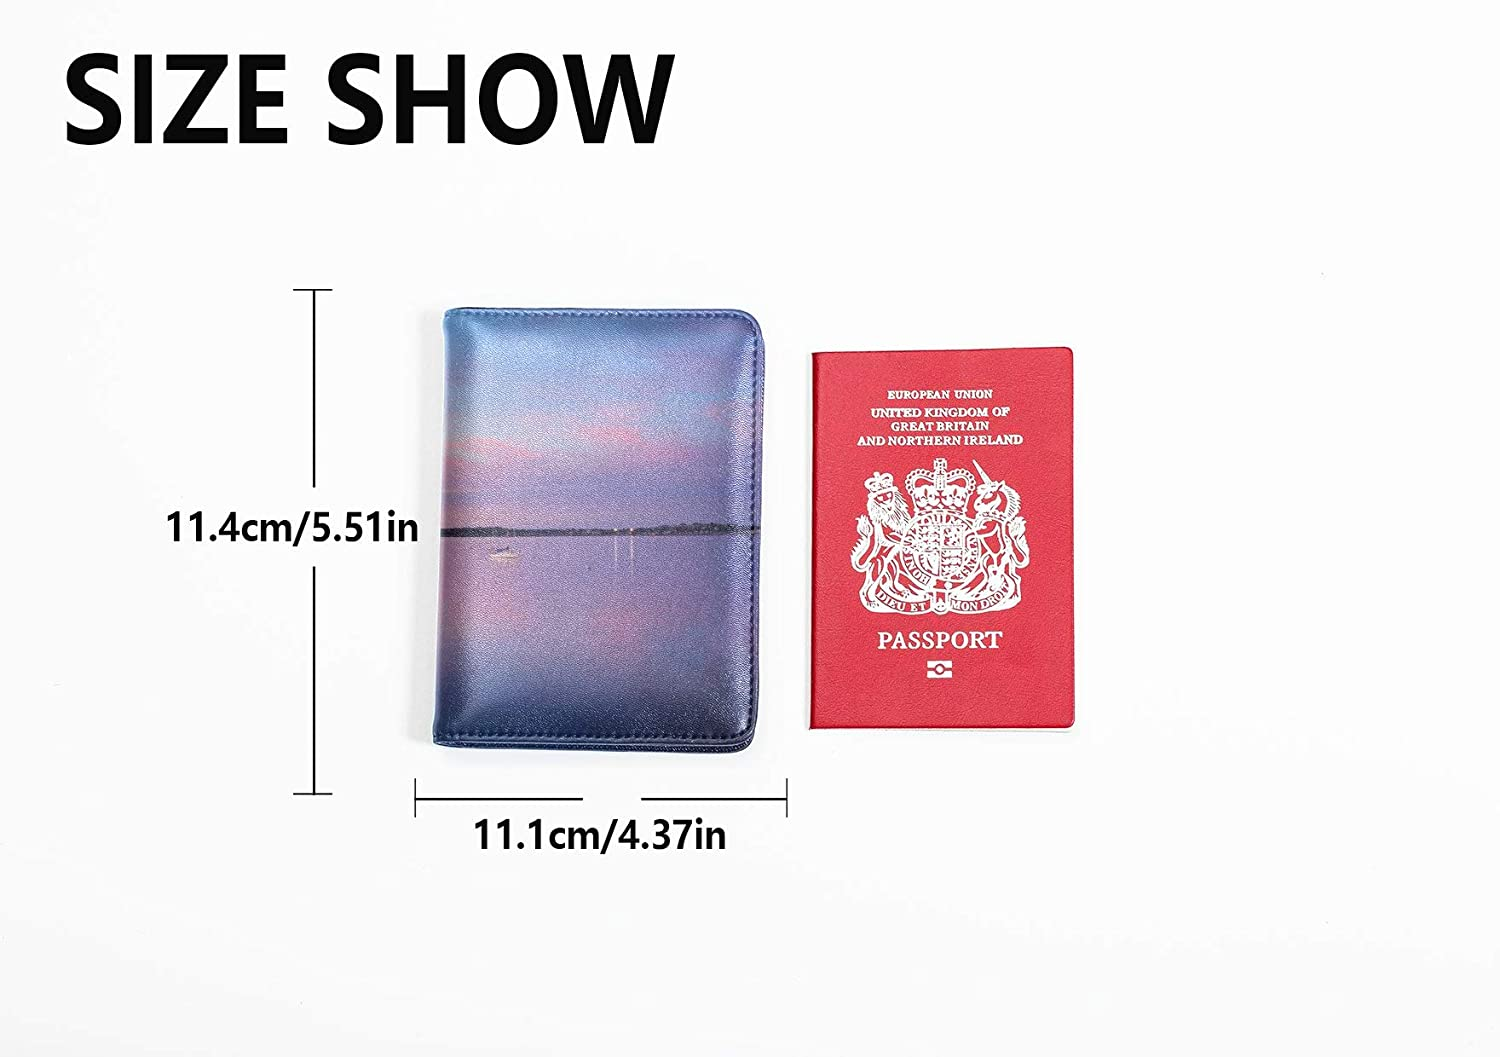 Cartoon Passport Cover Dreamy Beautiful Photography Pink Lake Passport Holder Cover Pack Multi Purpose Print Passport Cases For Men Travel Wallets For Unisex 5.51x4.37 Inch